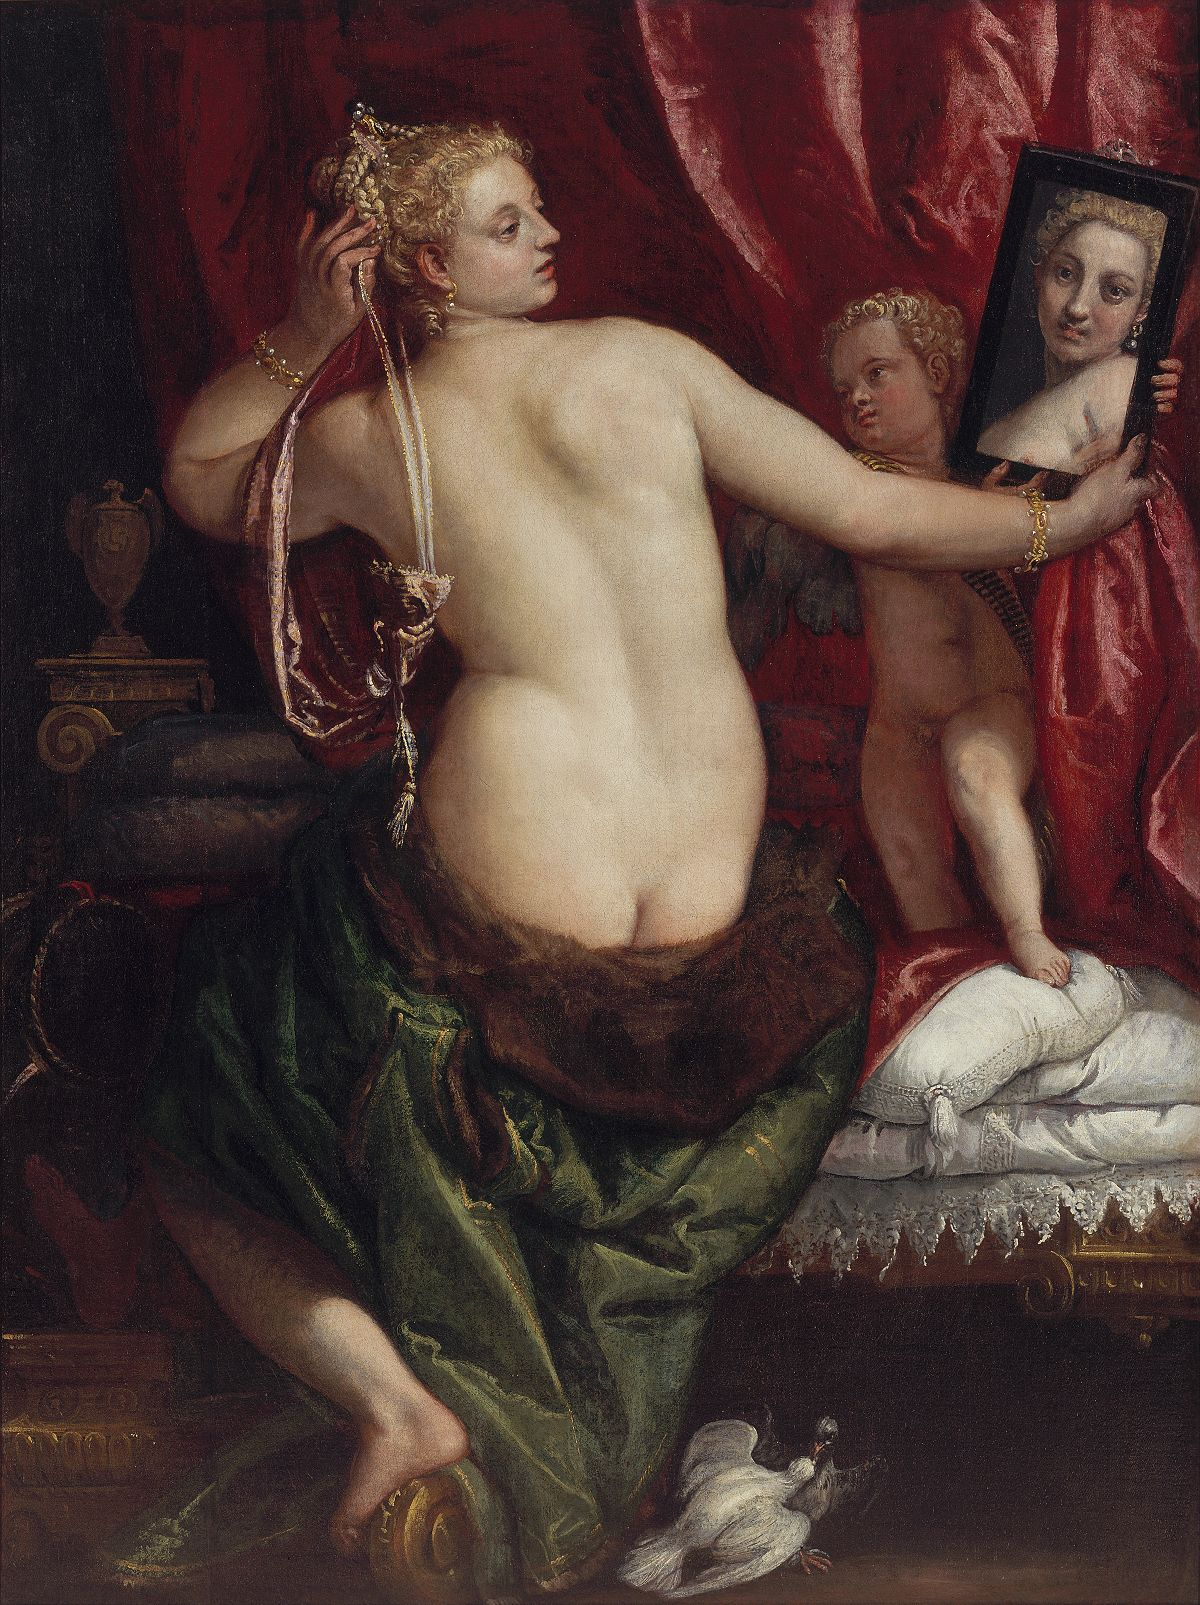 http://upload.wikimedia.org/wikipedia/commons/thumb/e/e9/Paolo_Veronese_-_Venus_with_a_Mirror.jpg/1200px-Paolo_Veronese_-_Venus_with_a_Mirror.jpg